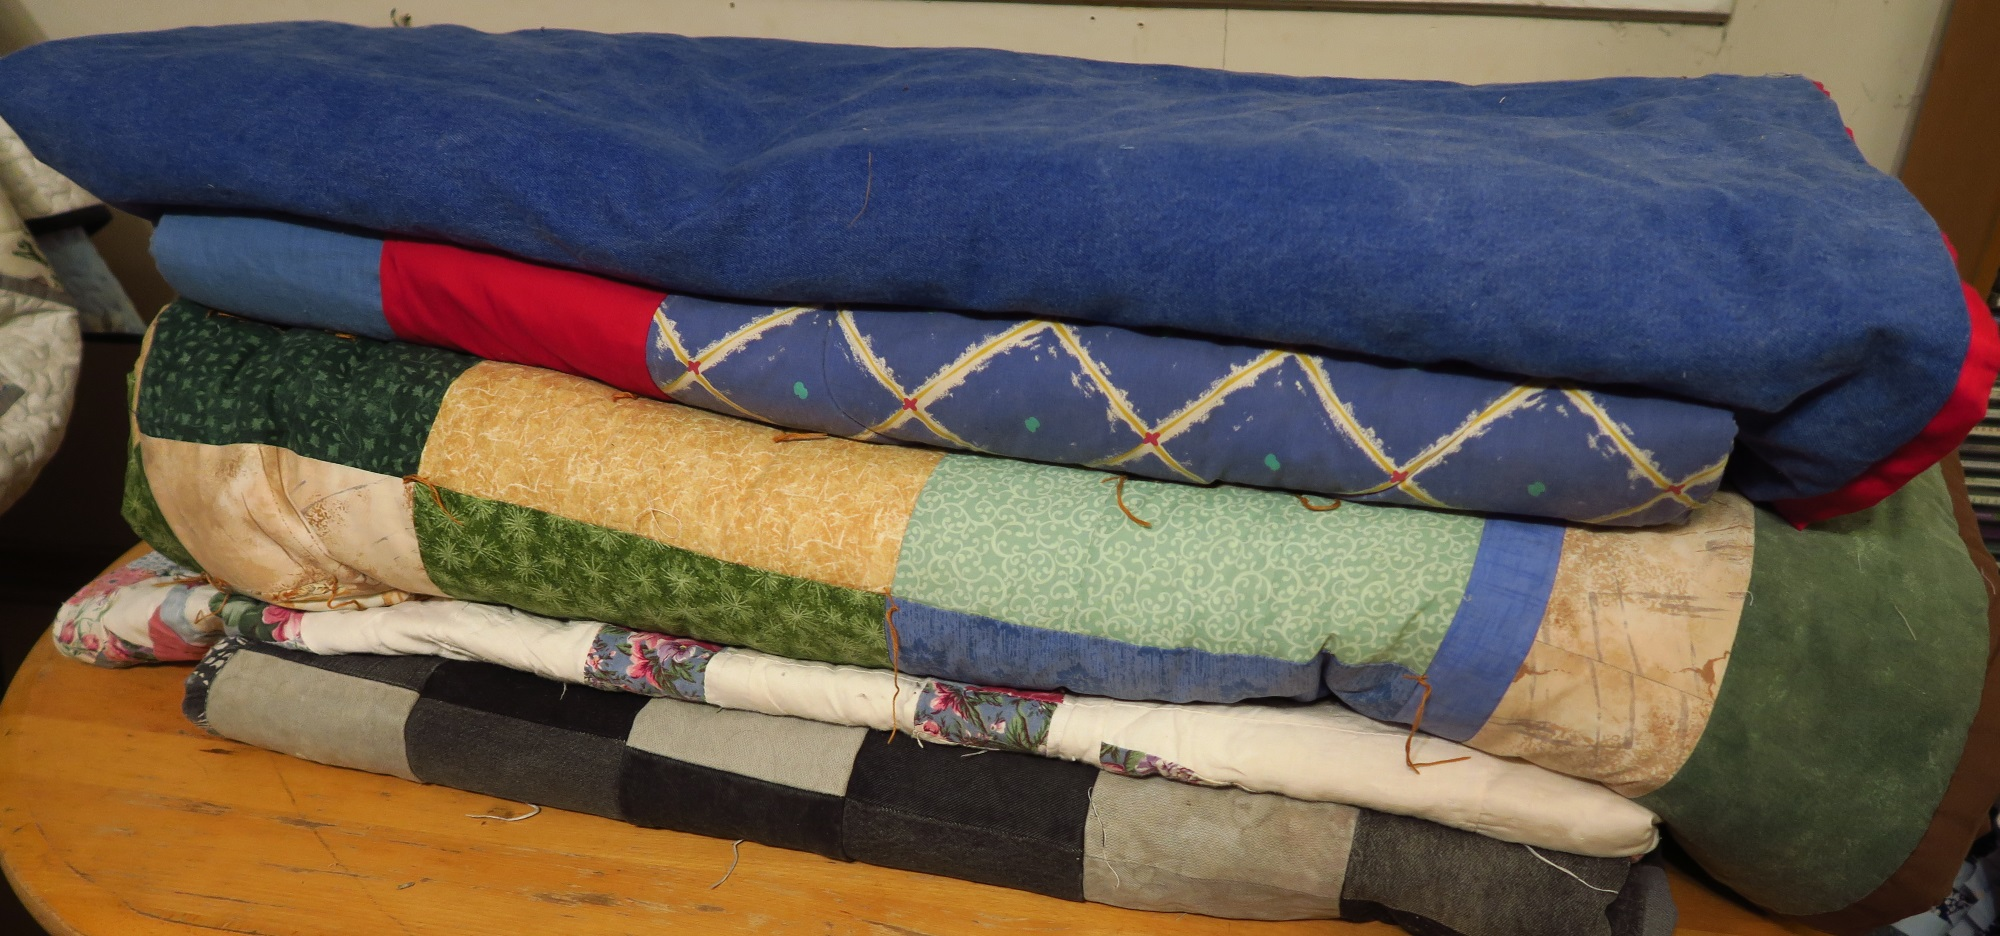 This is the same pile of quilts as on the left - just stacked neatly.